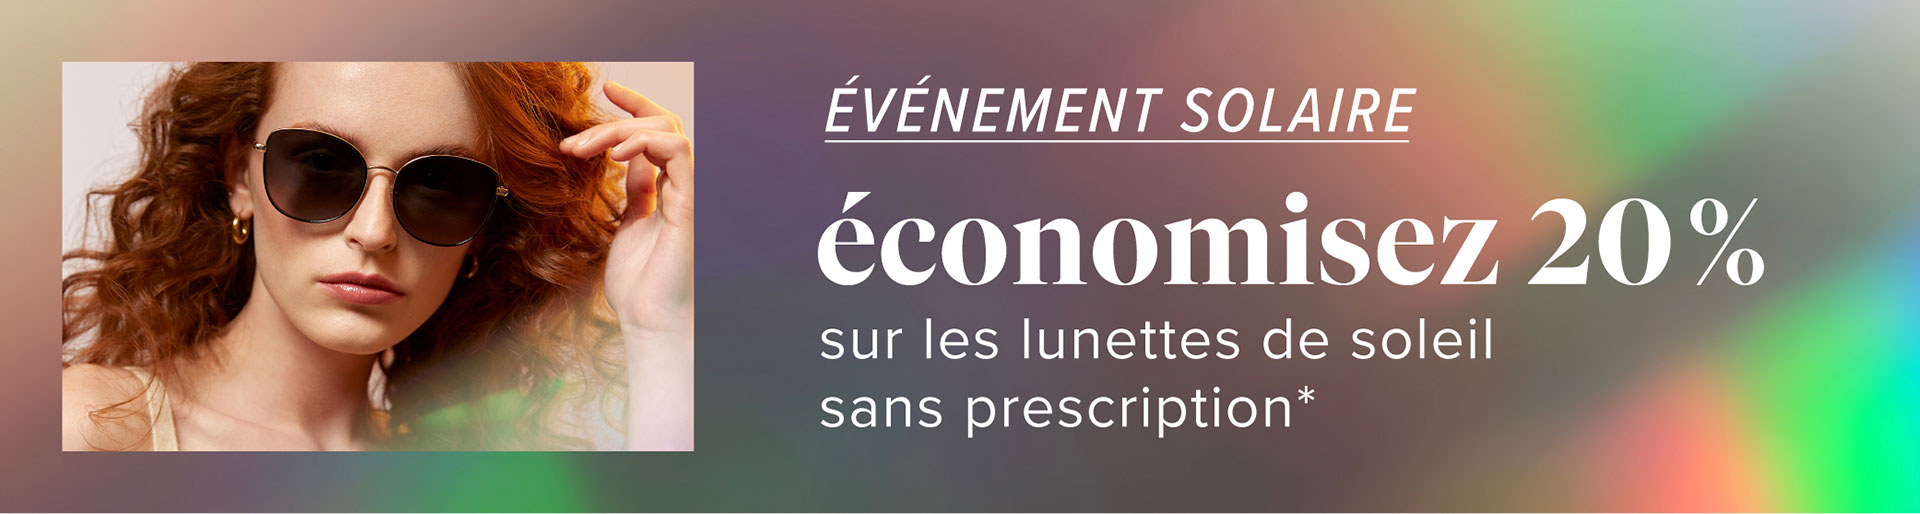 Q2-20210419-SunEvent-PromoBanners-FR-1